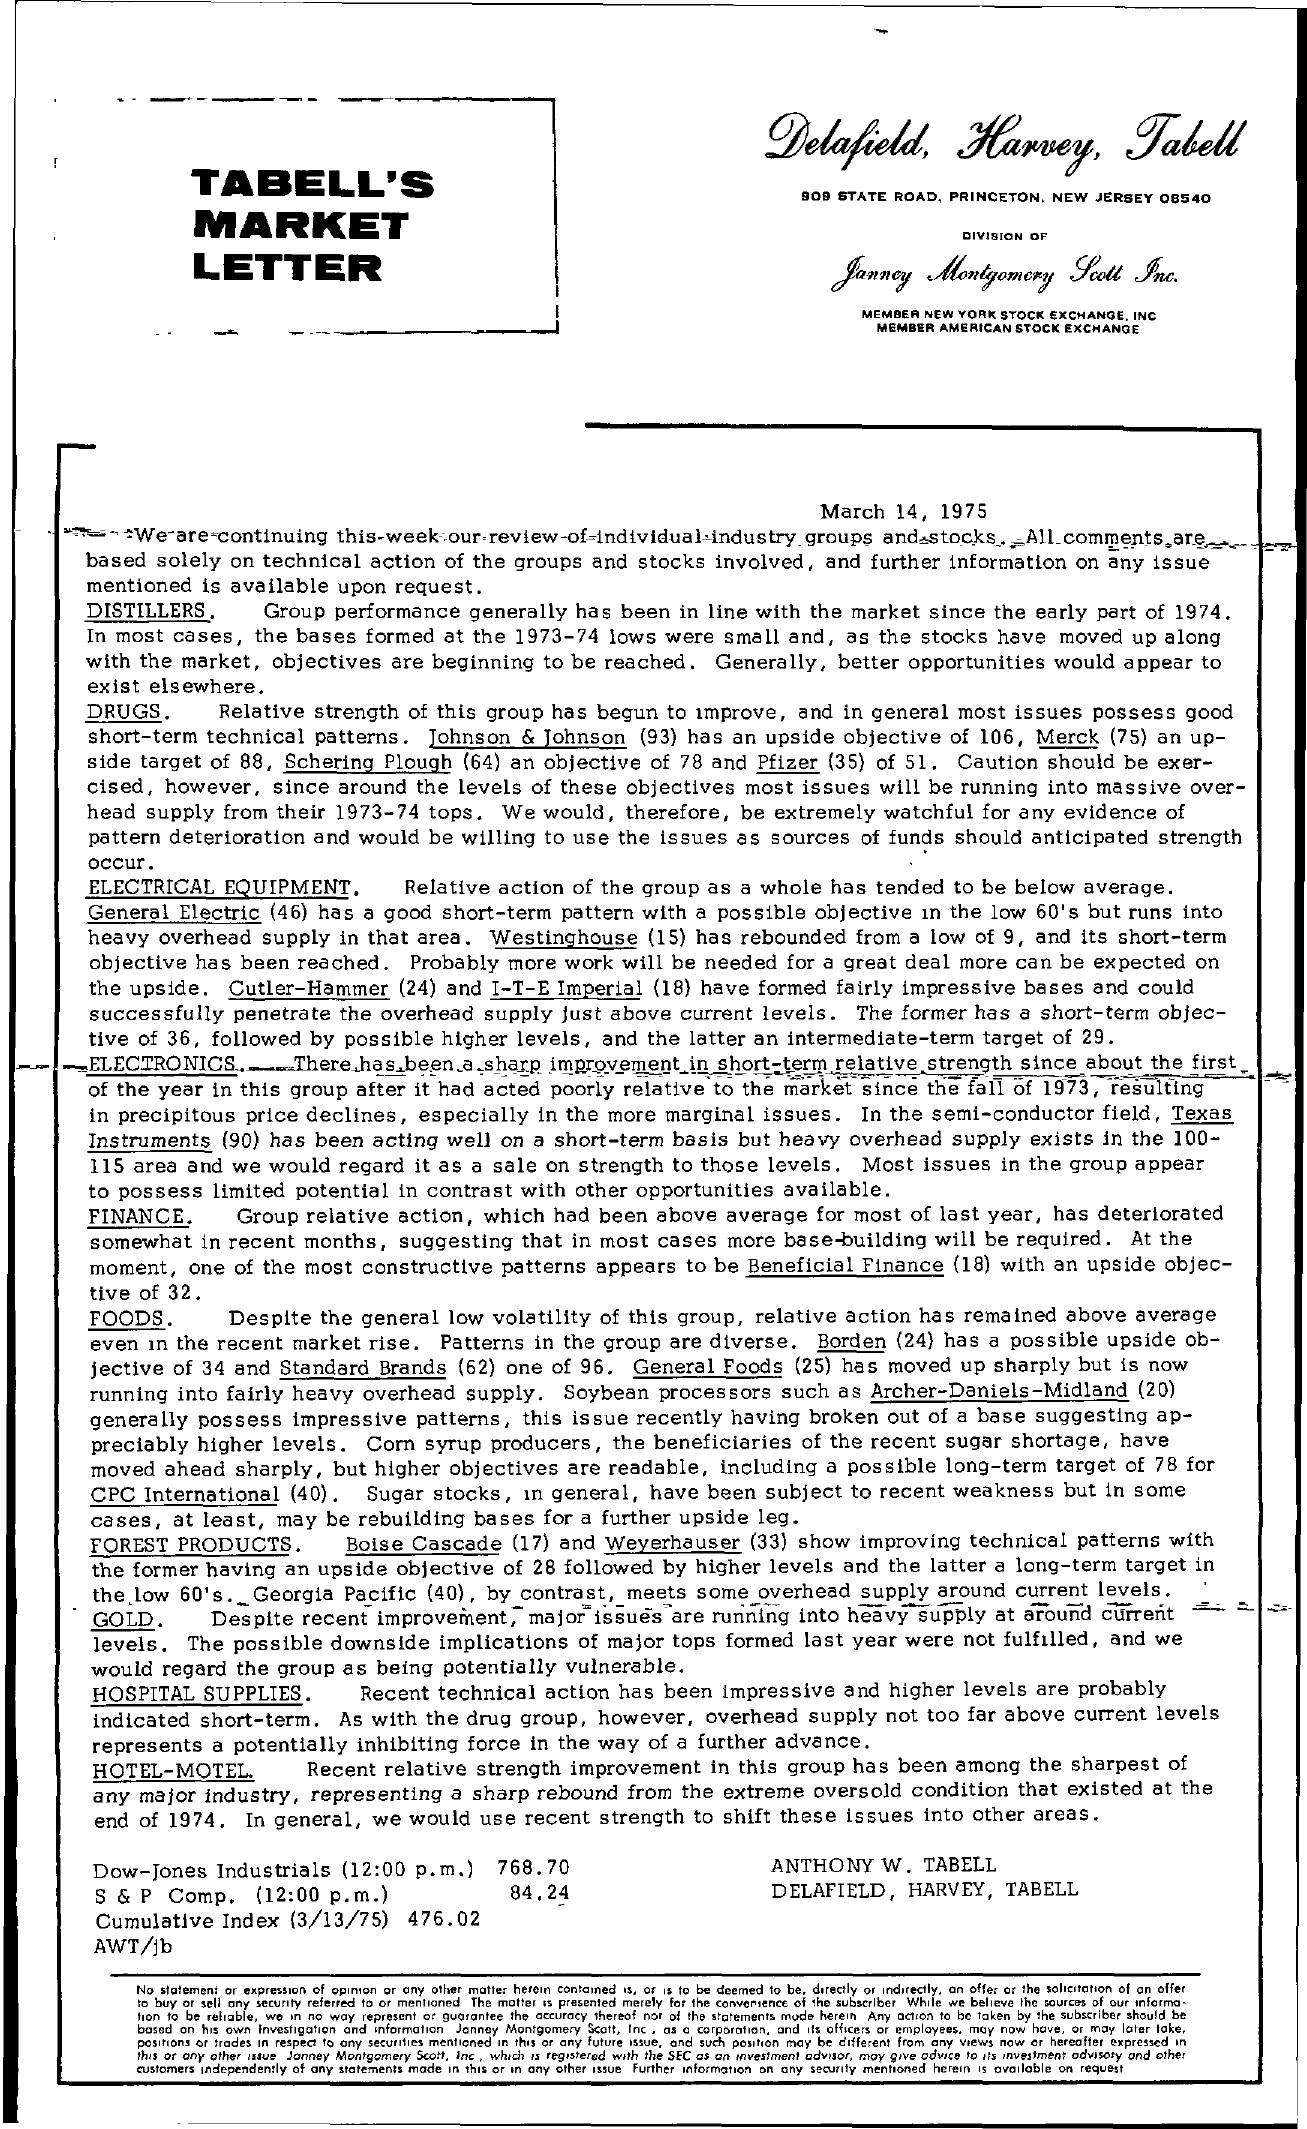 Tabell's Market Letter - March 14, 1975